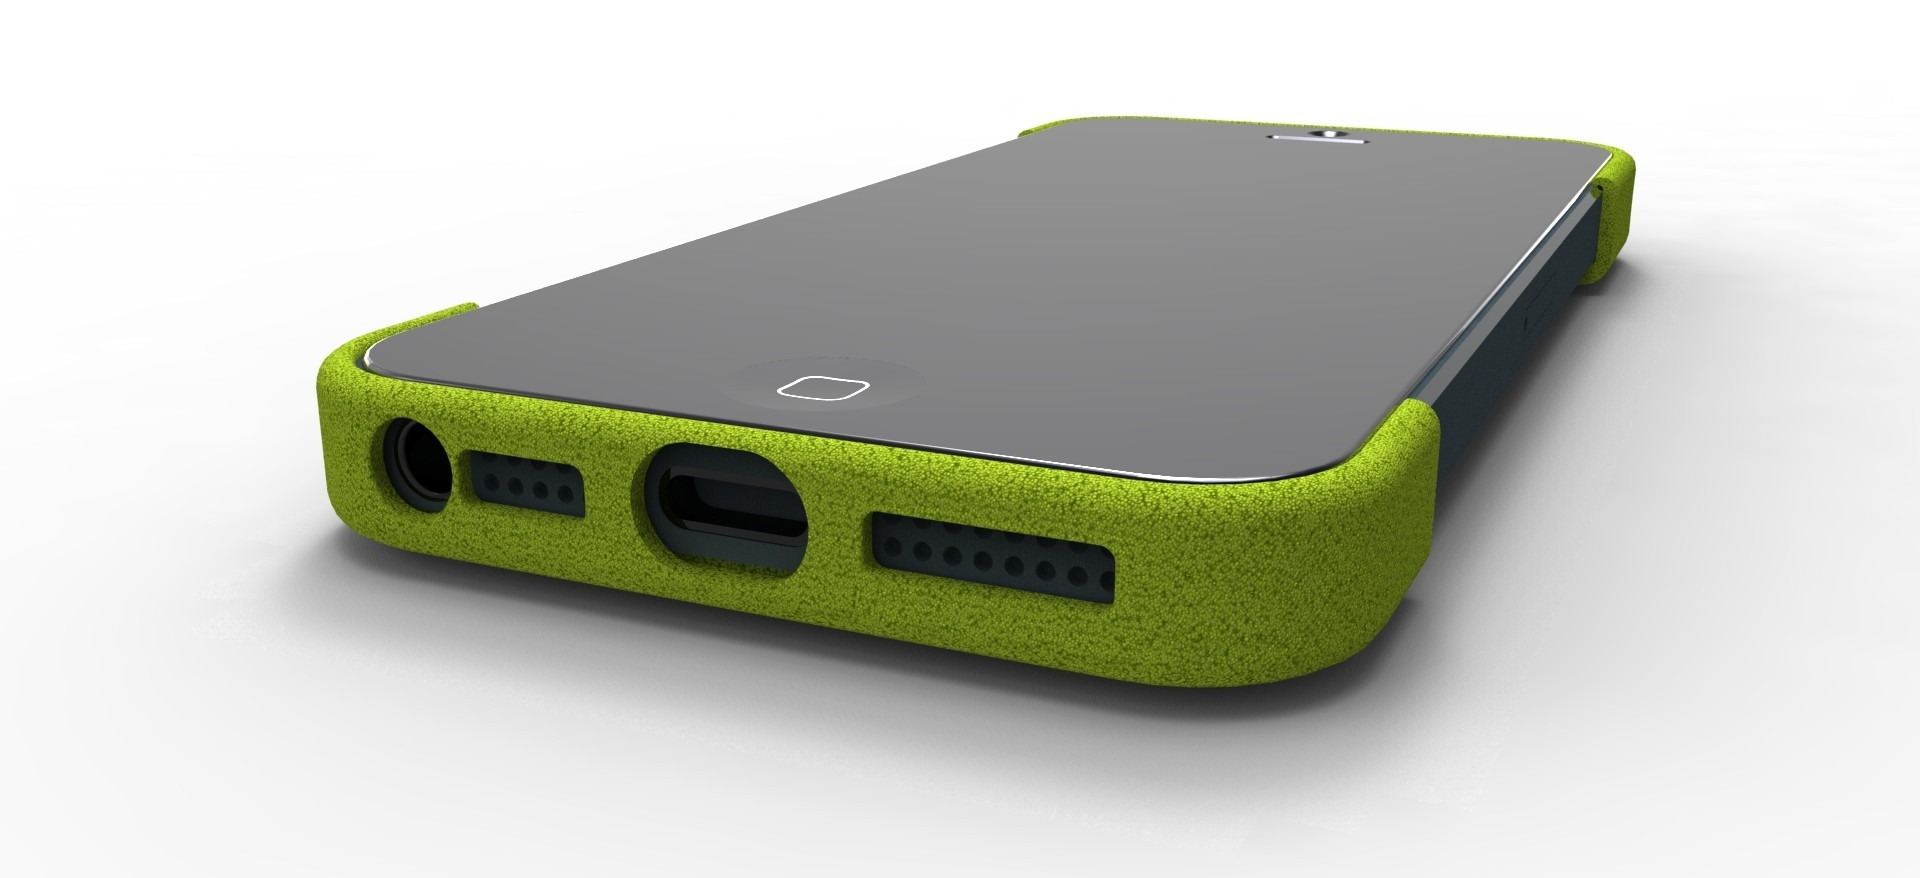 Exclusive Gallery of iPhone 5 3D Printed Cases: Get Yours Today on 3DPcase